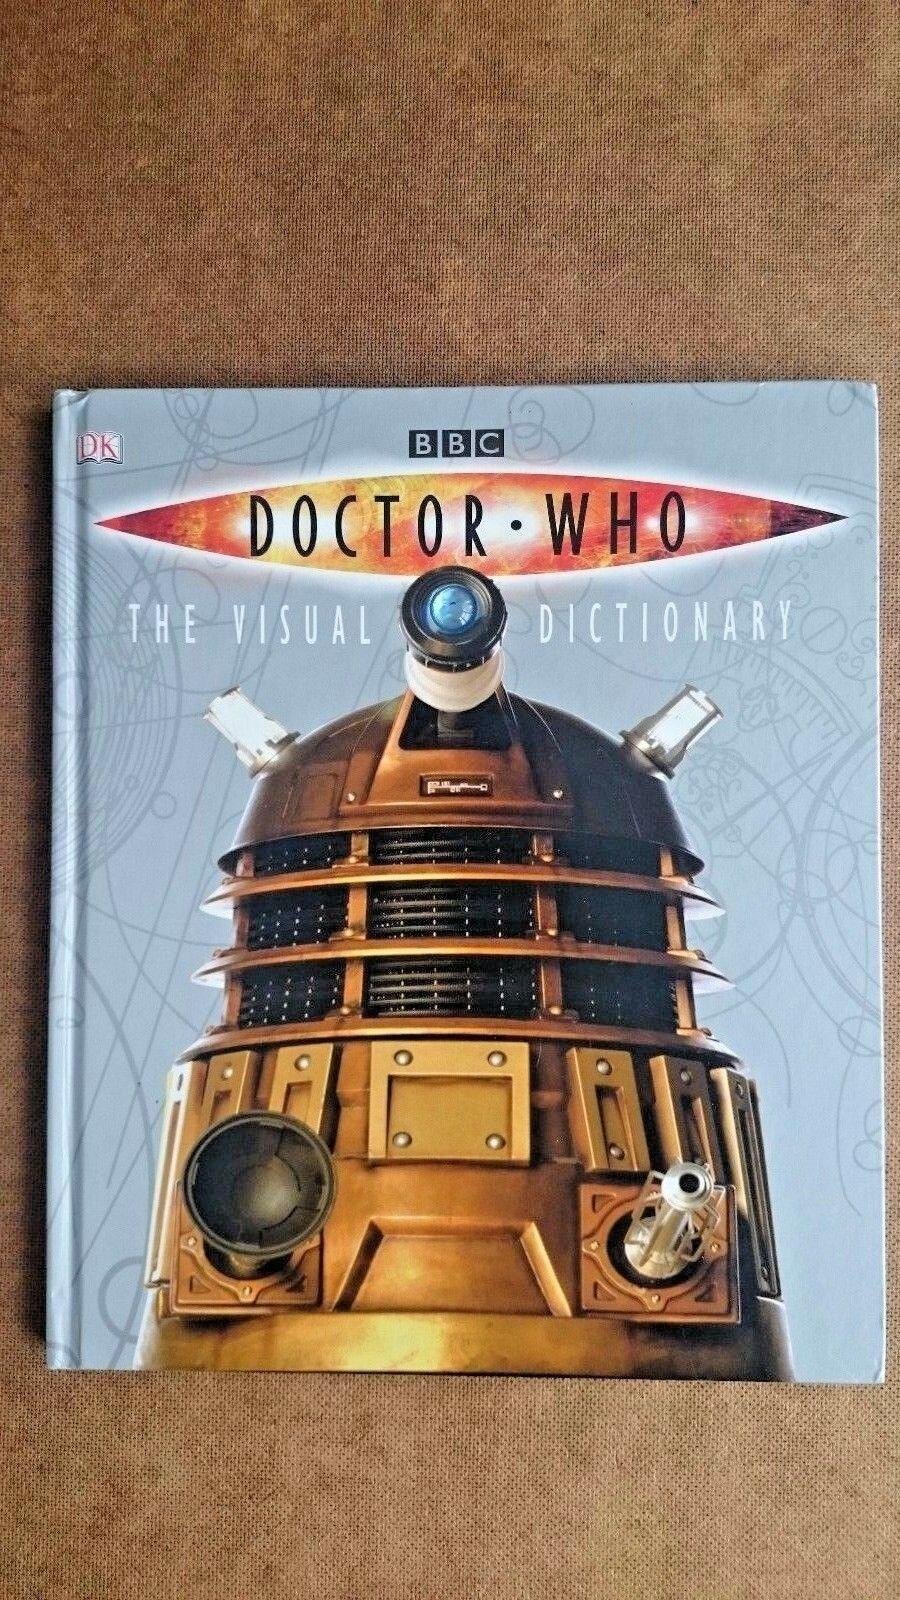 Doctor Who  Visual Dictionary by Andrew Darling, DK Books (2007)